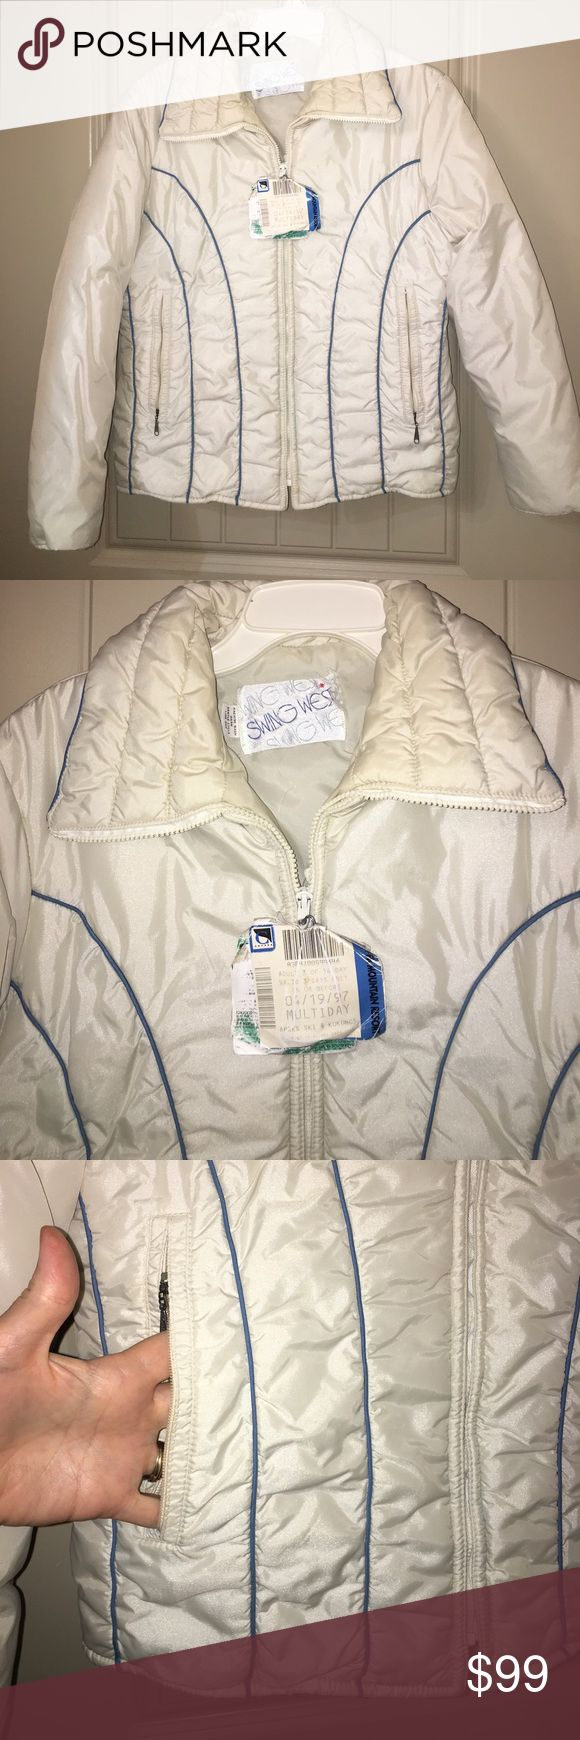 "Vintage SWING WEST White Ski Jacket sz M This is a great Vintage SWING WEST White Ski Jacket in a sz M , bust 38"", overall length 23"", jacket has blue accent stripes! Great retro jacket complete with 1997 ski lift ticket attached! Good used condition! I ship fast! Happy poshing friends! Swing west Jackets & Coats"